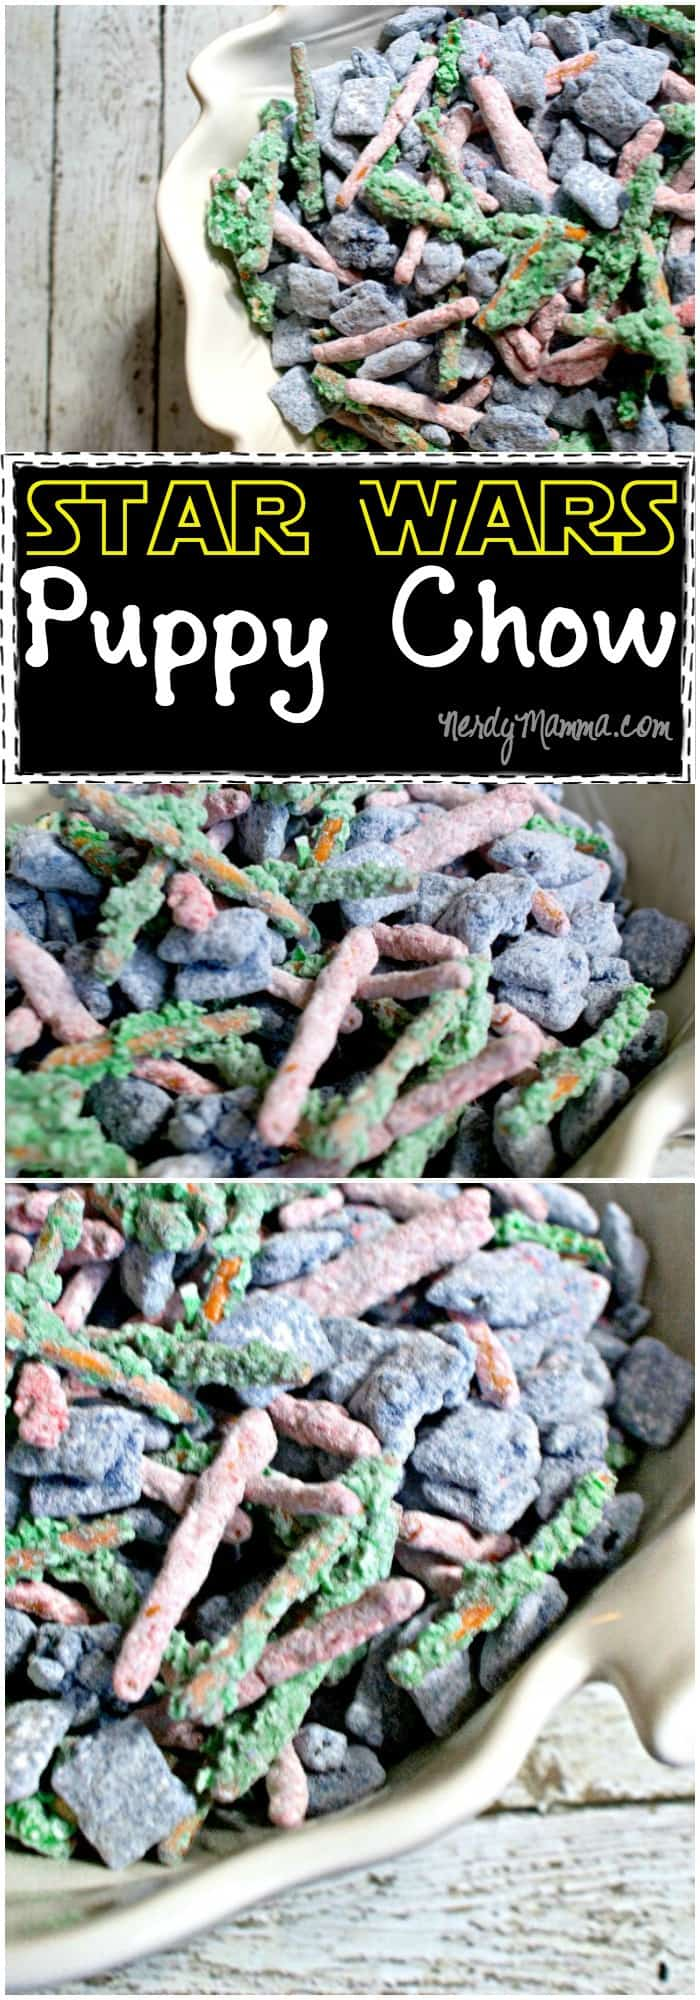 Wow. This Star Wars Puppy Chow is just so awesome.It's nut-free and has some coconut in it, which is awesome. But then it's all light sabers and awesome...LOVE IT!